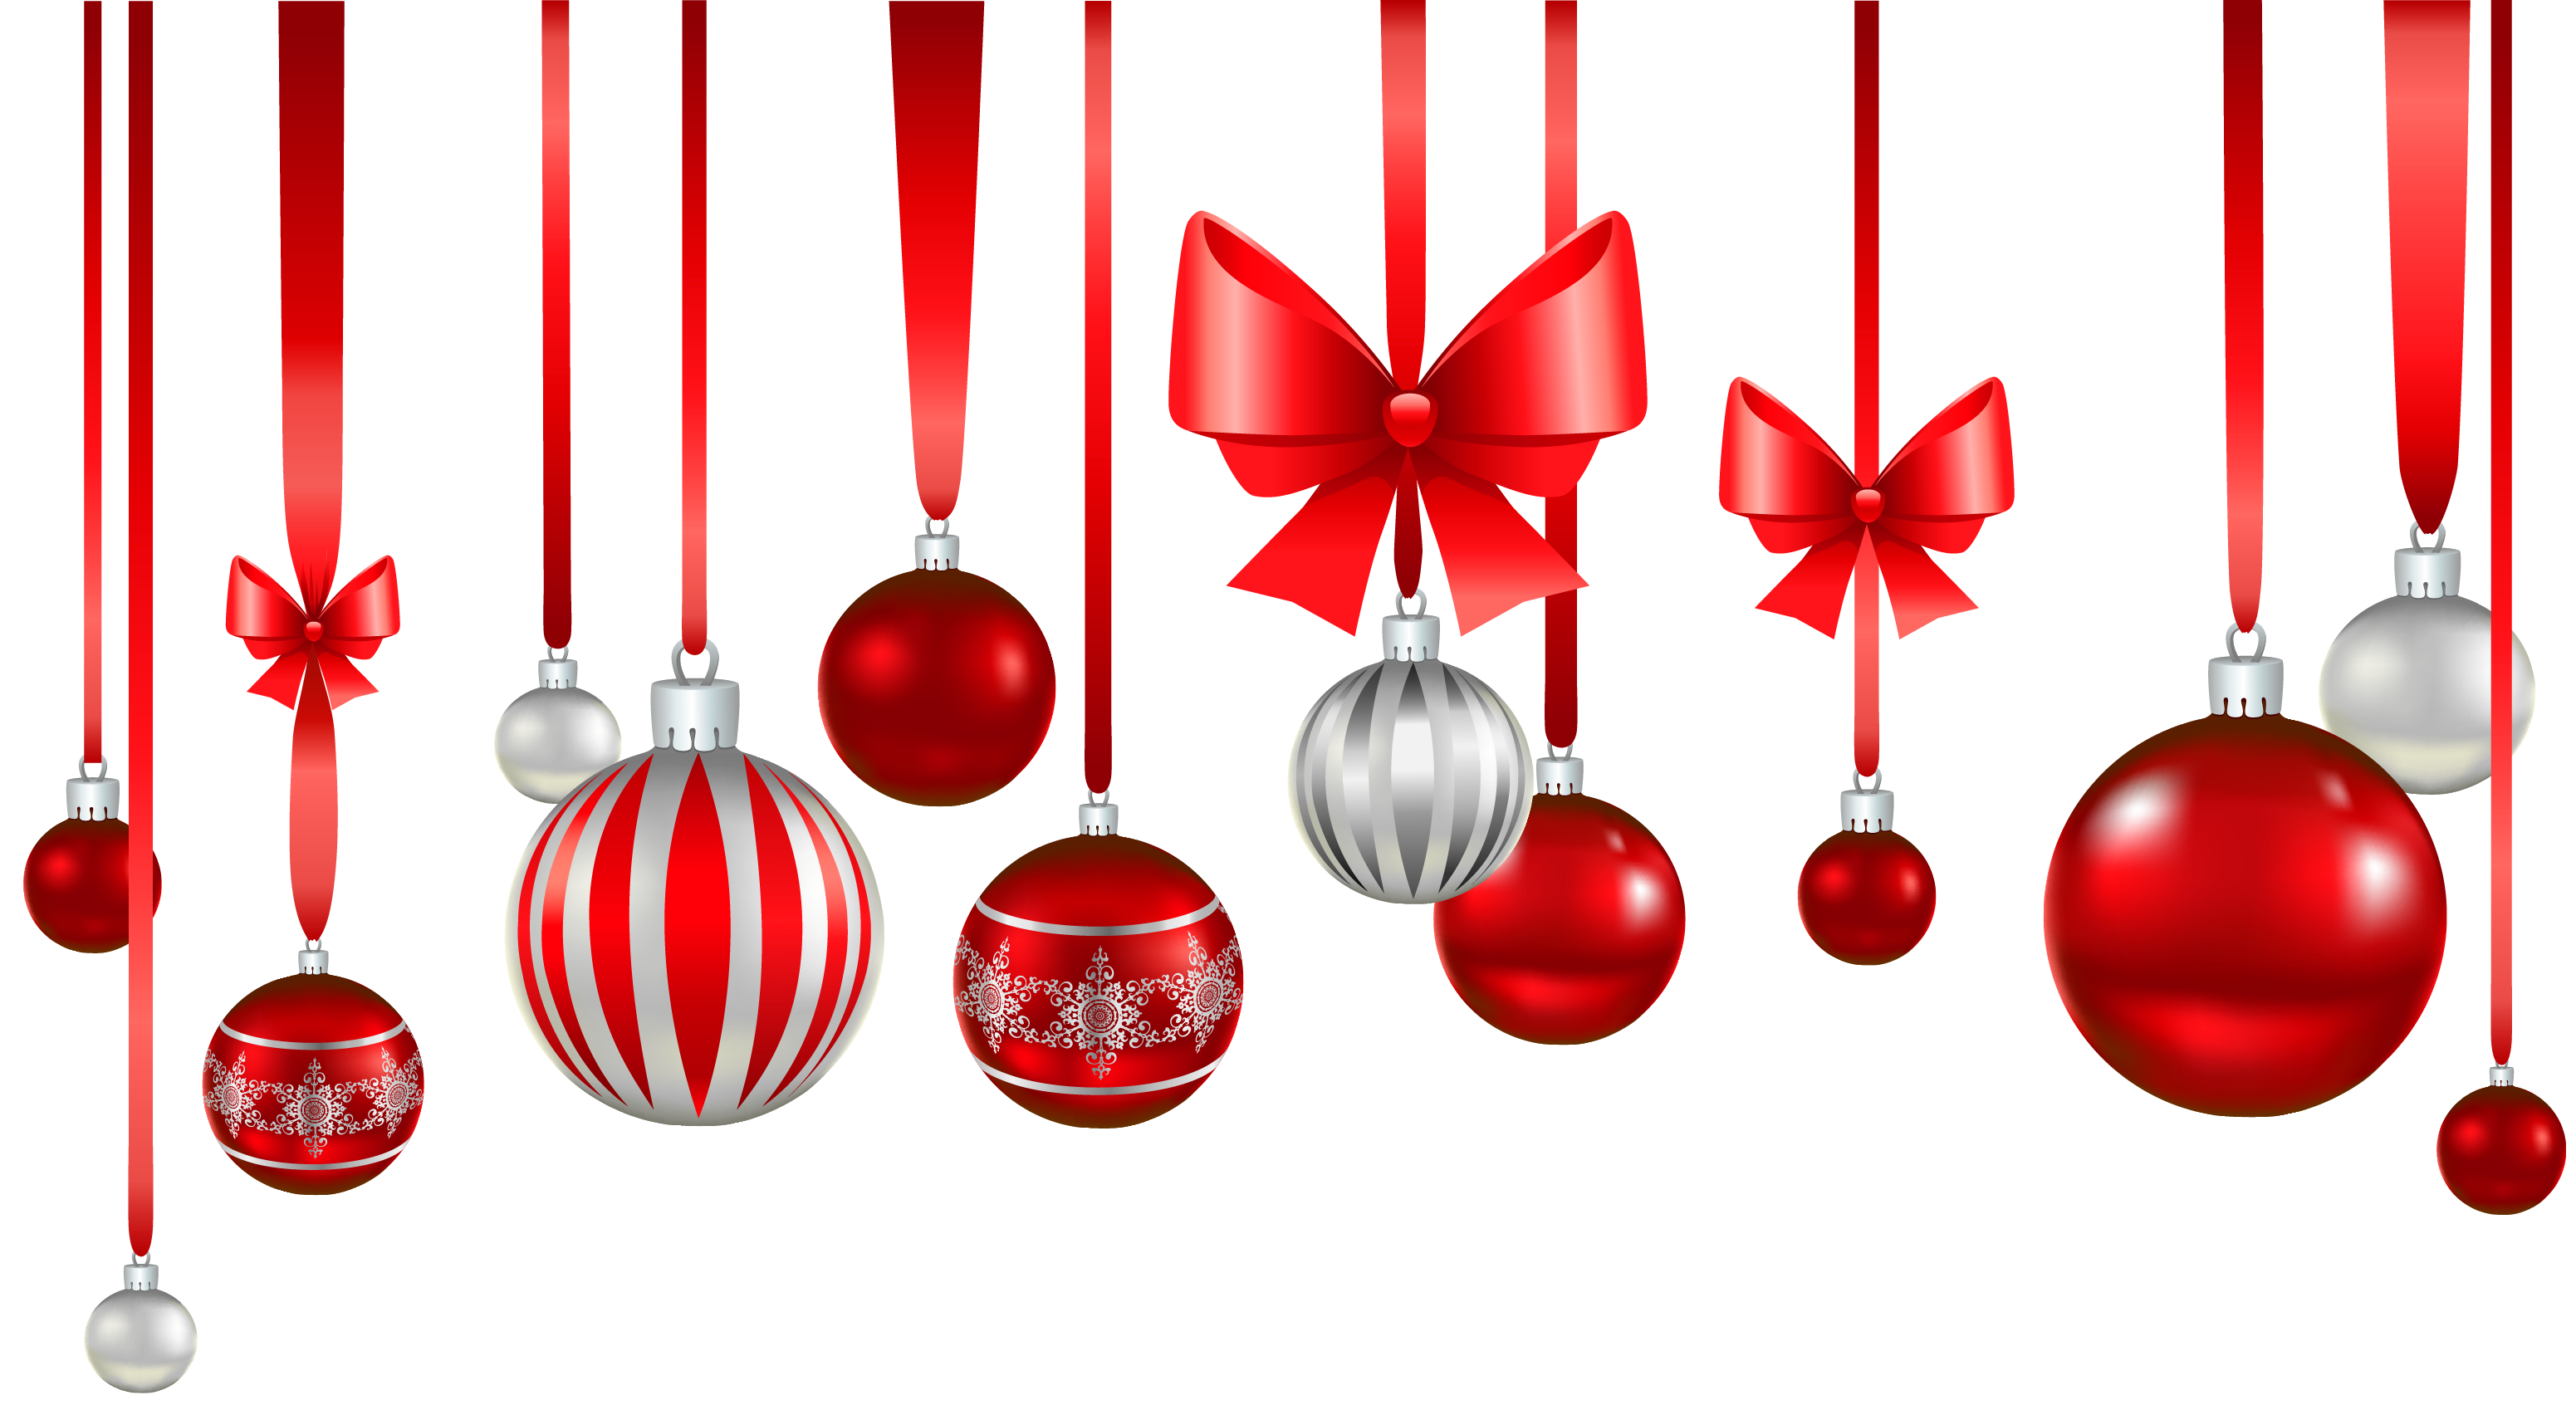 Red white balls ornament. Christmas images png